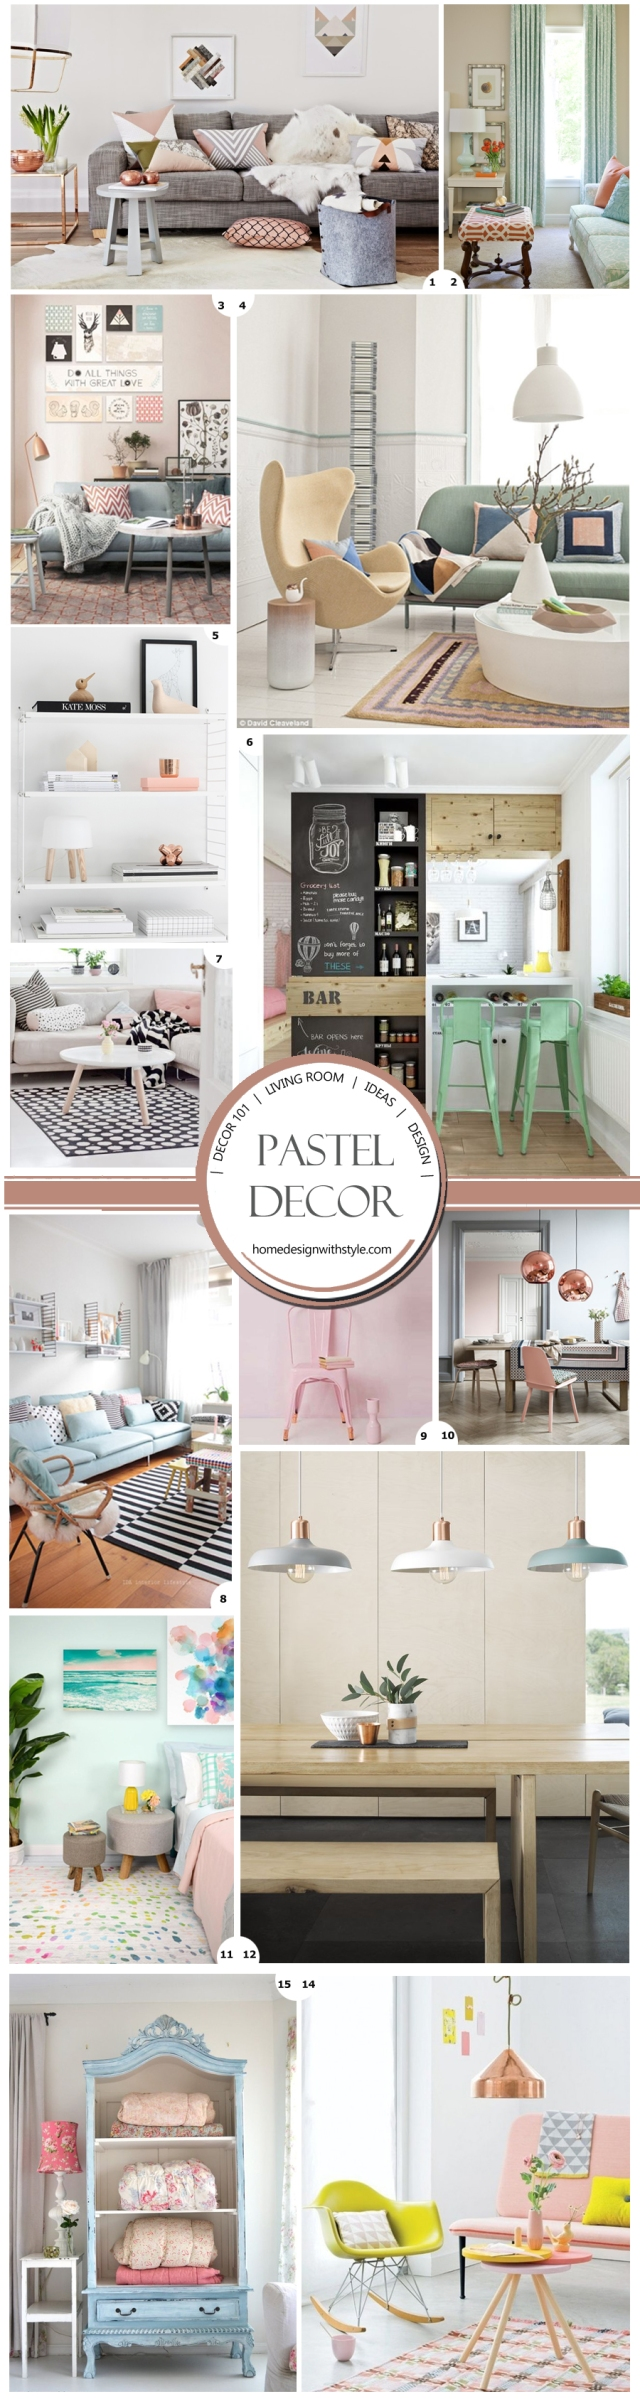 patel-living-room-decor-pin-